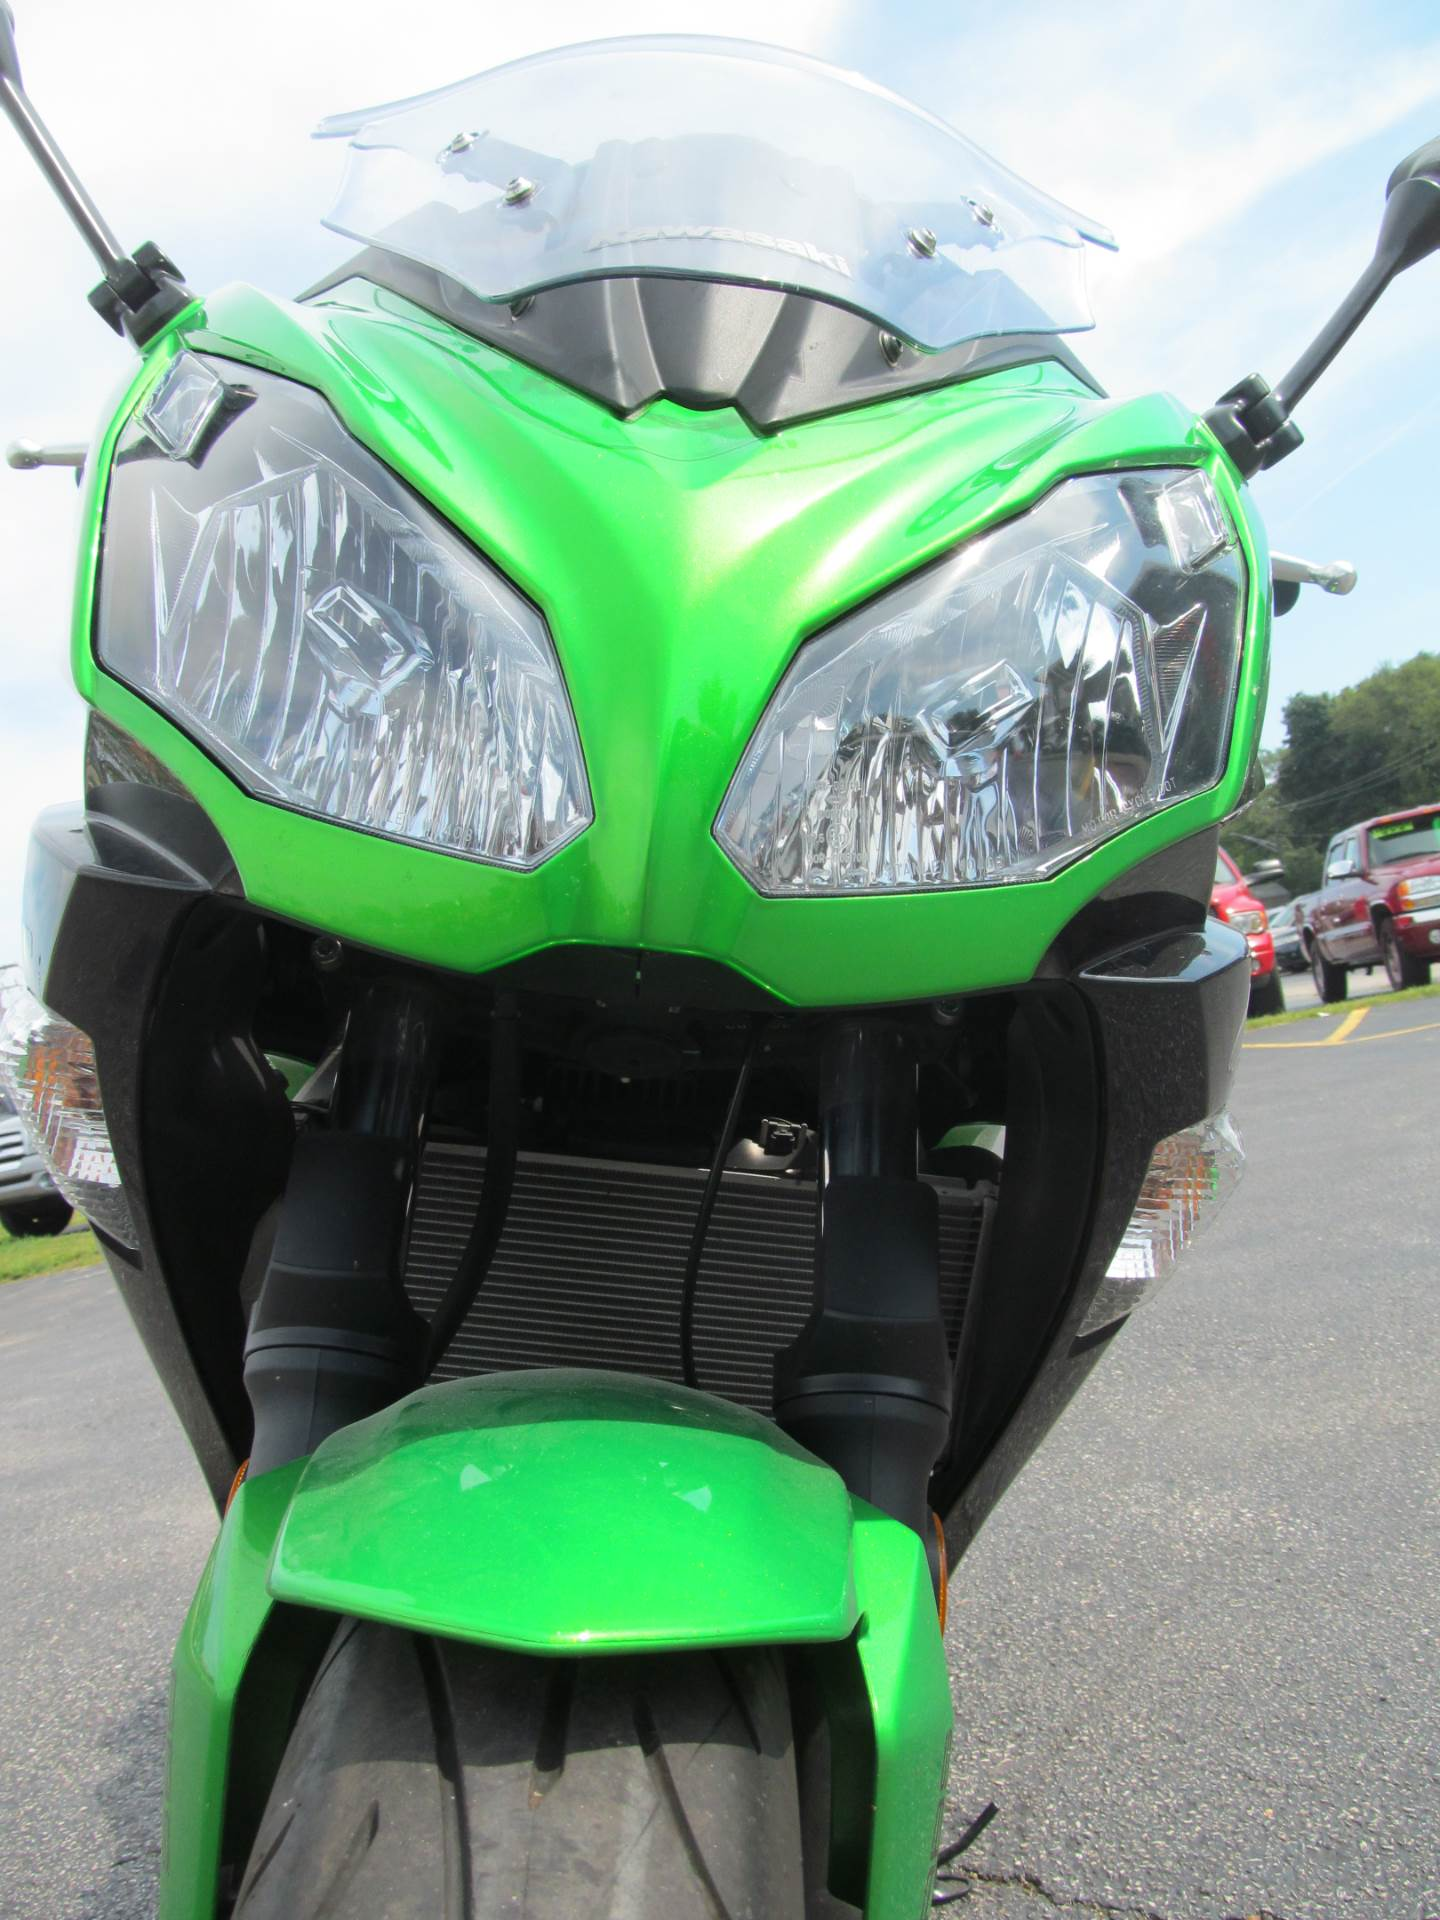 2016 Kawasaki Ninja 650 ABS in Crystal Lake, Illinois - Photo 9